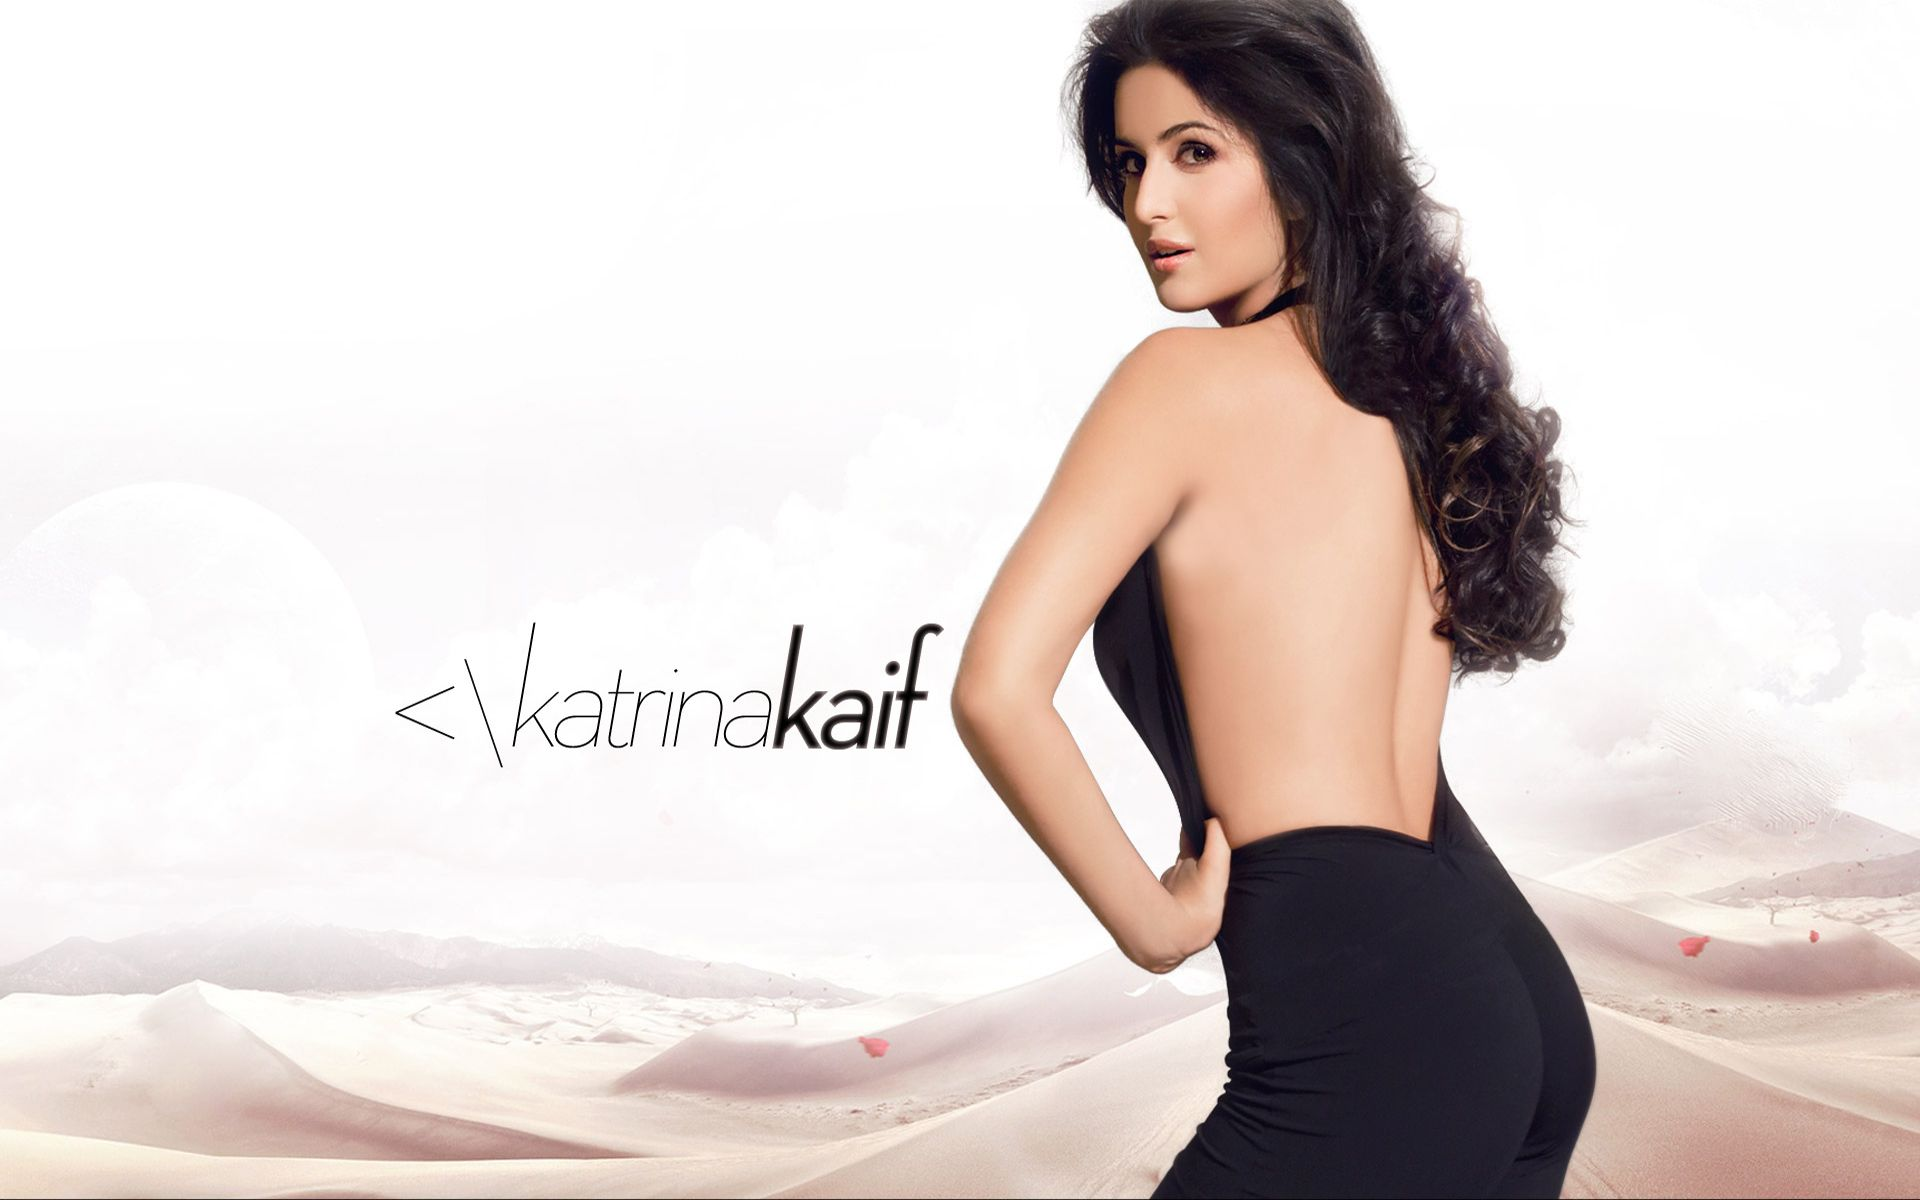 Sexy Katrina Kaif Wallpaper Katrina Kaif,New,Hd,Wallpapers,Photos -3535